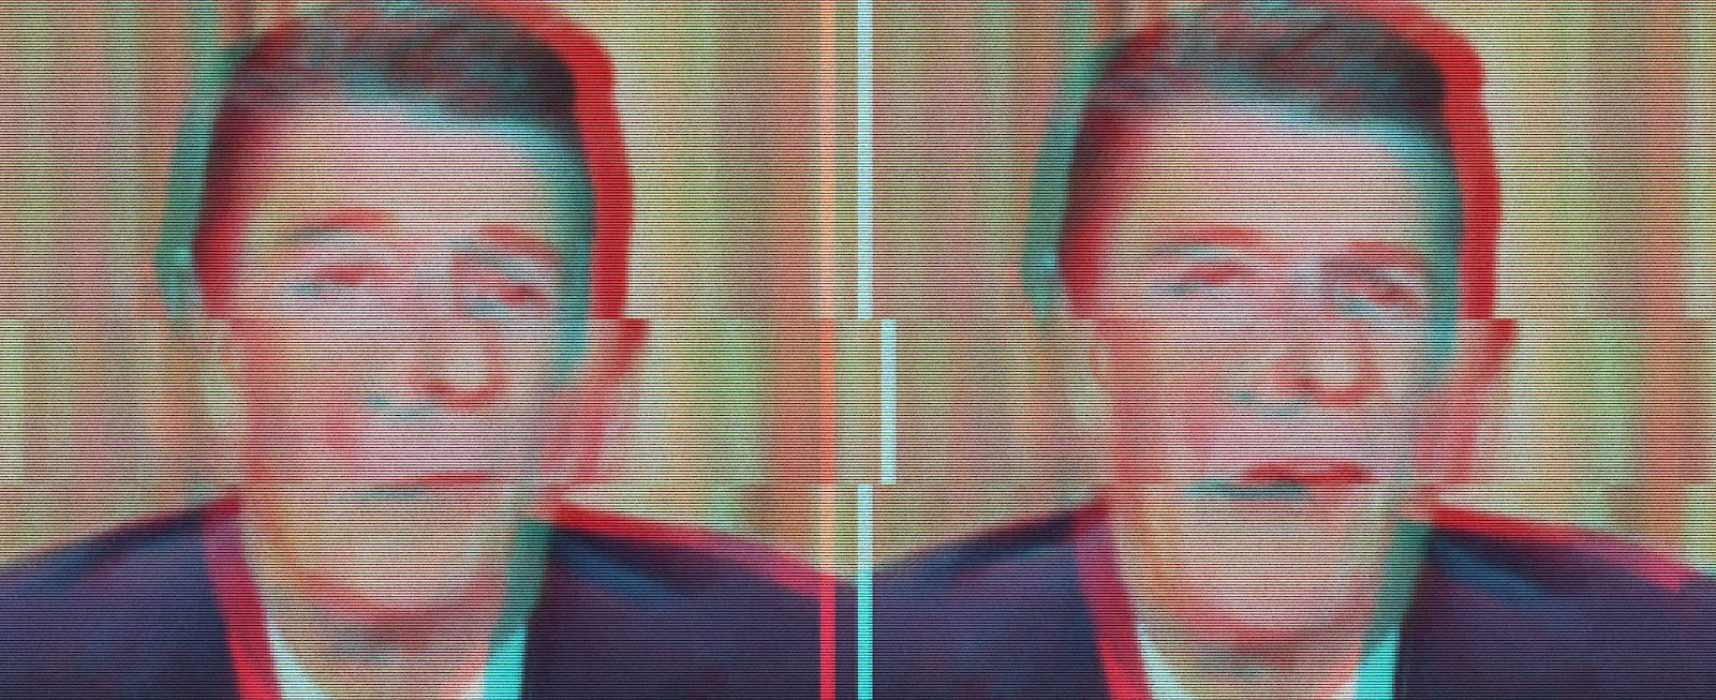 How The Wall Street Journal is preparing its journalists to detect deepfakes